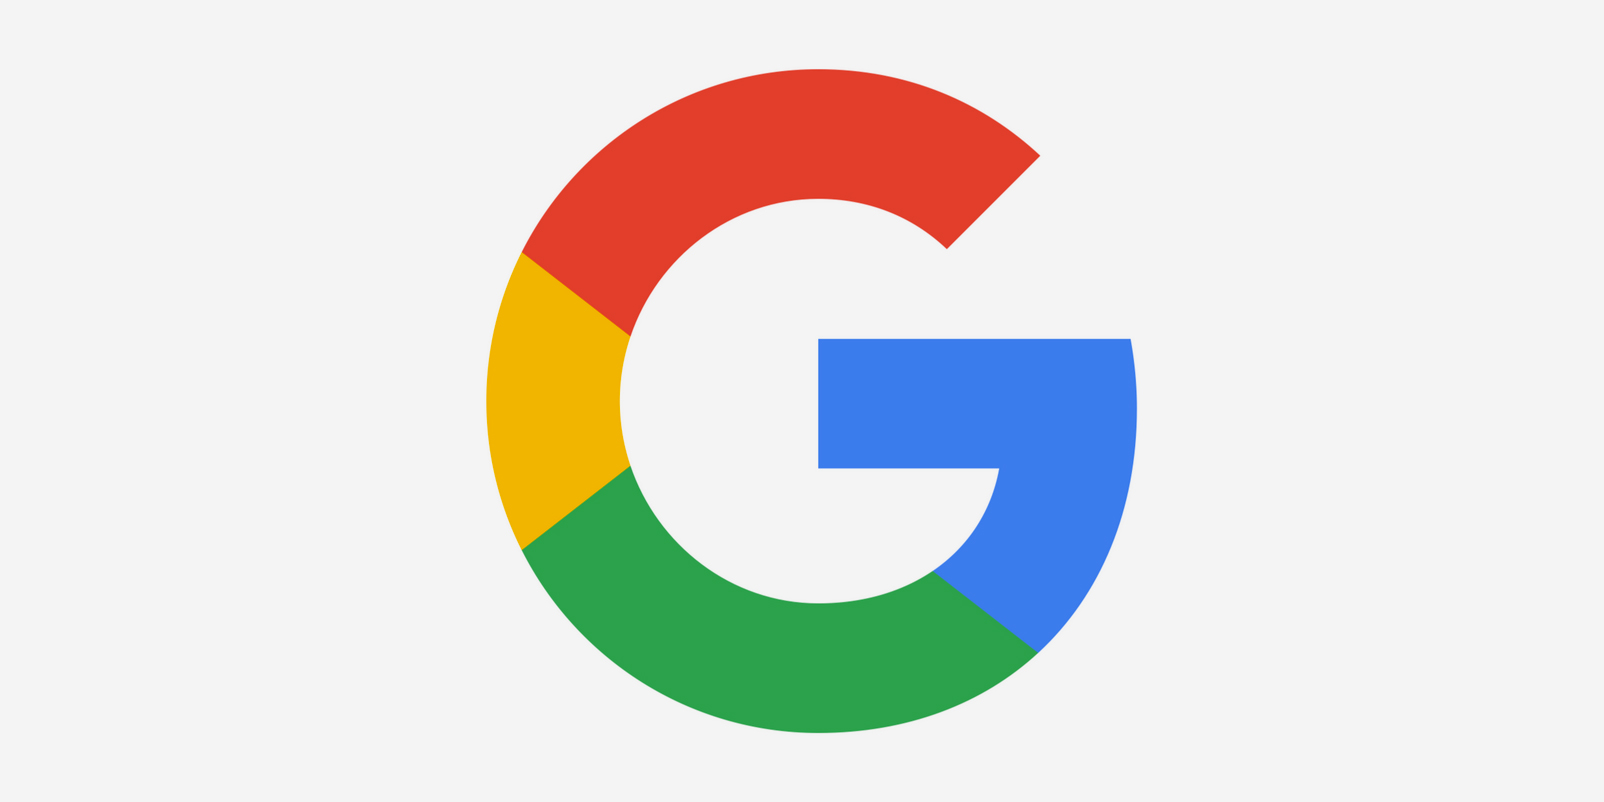 The Right Way to Think About Google